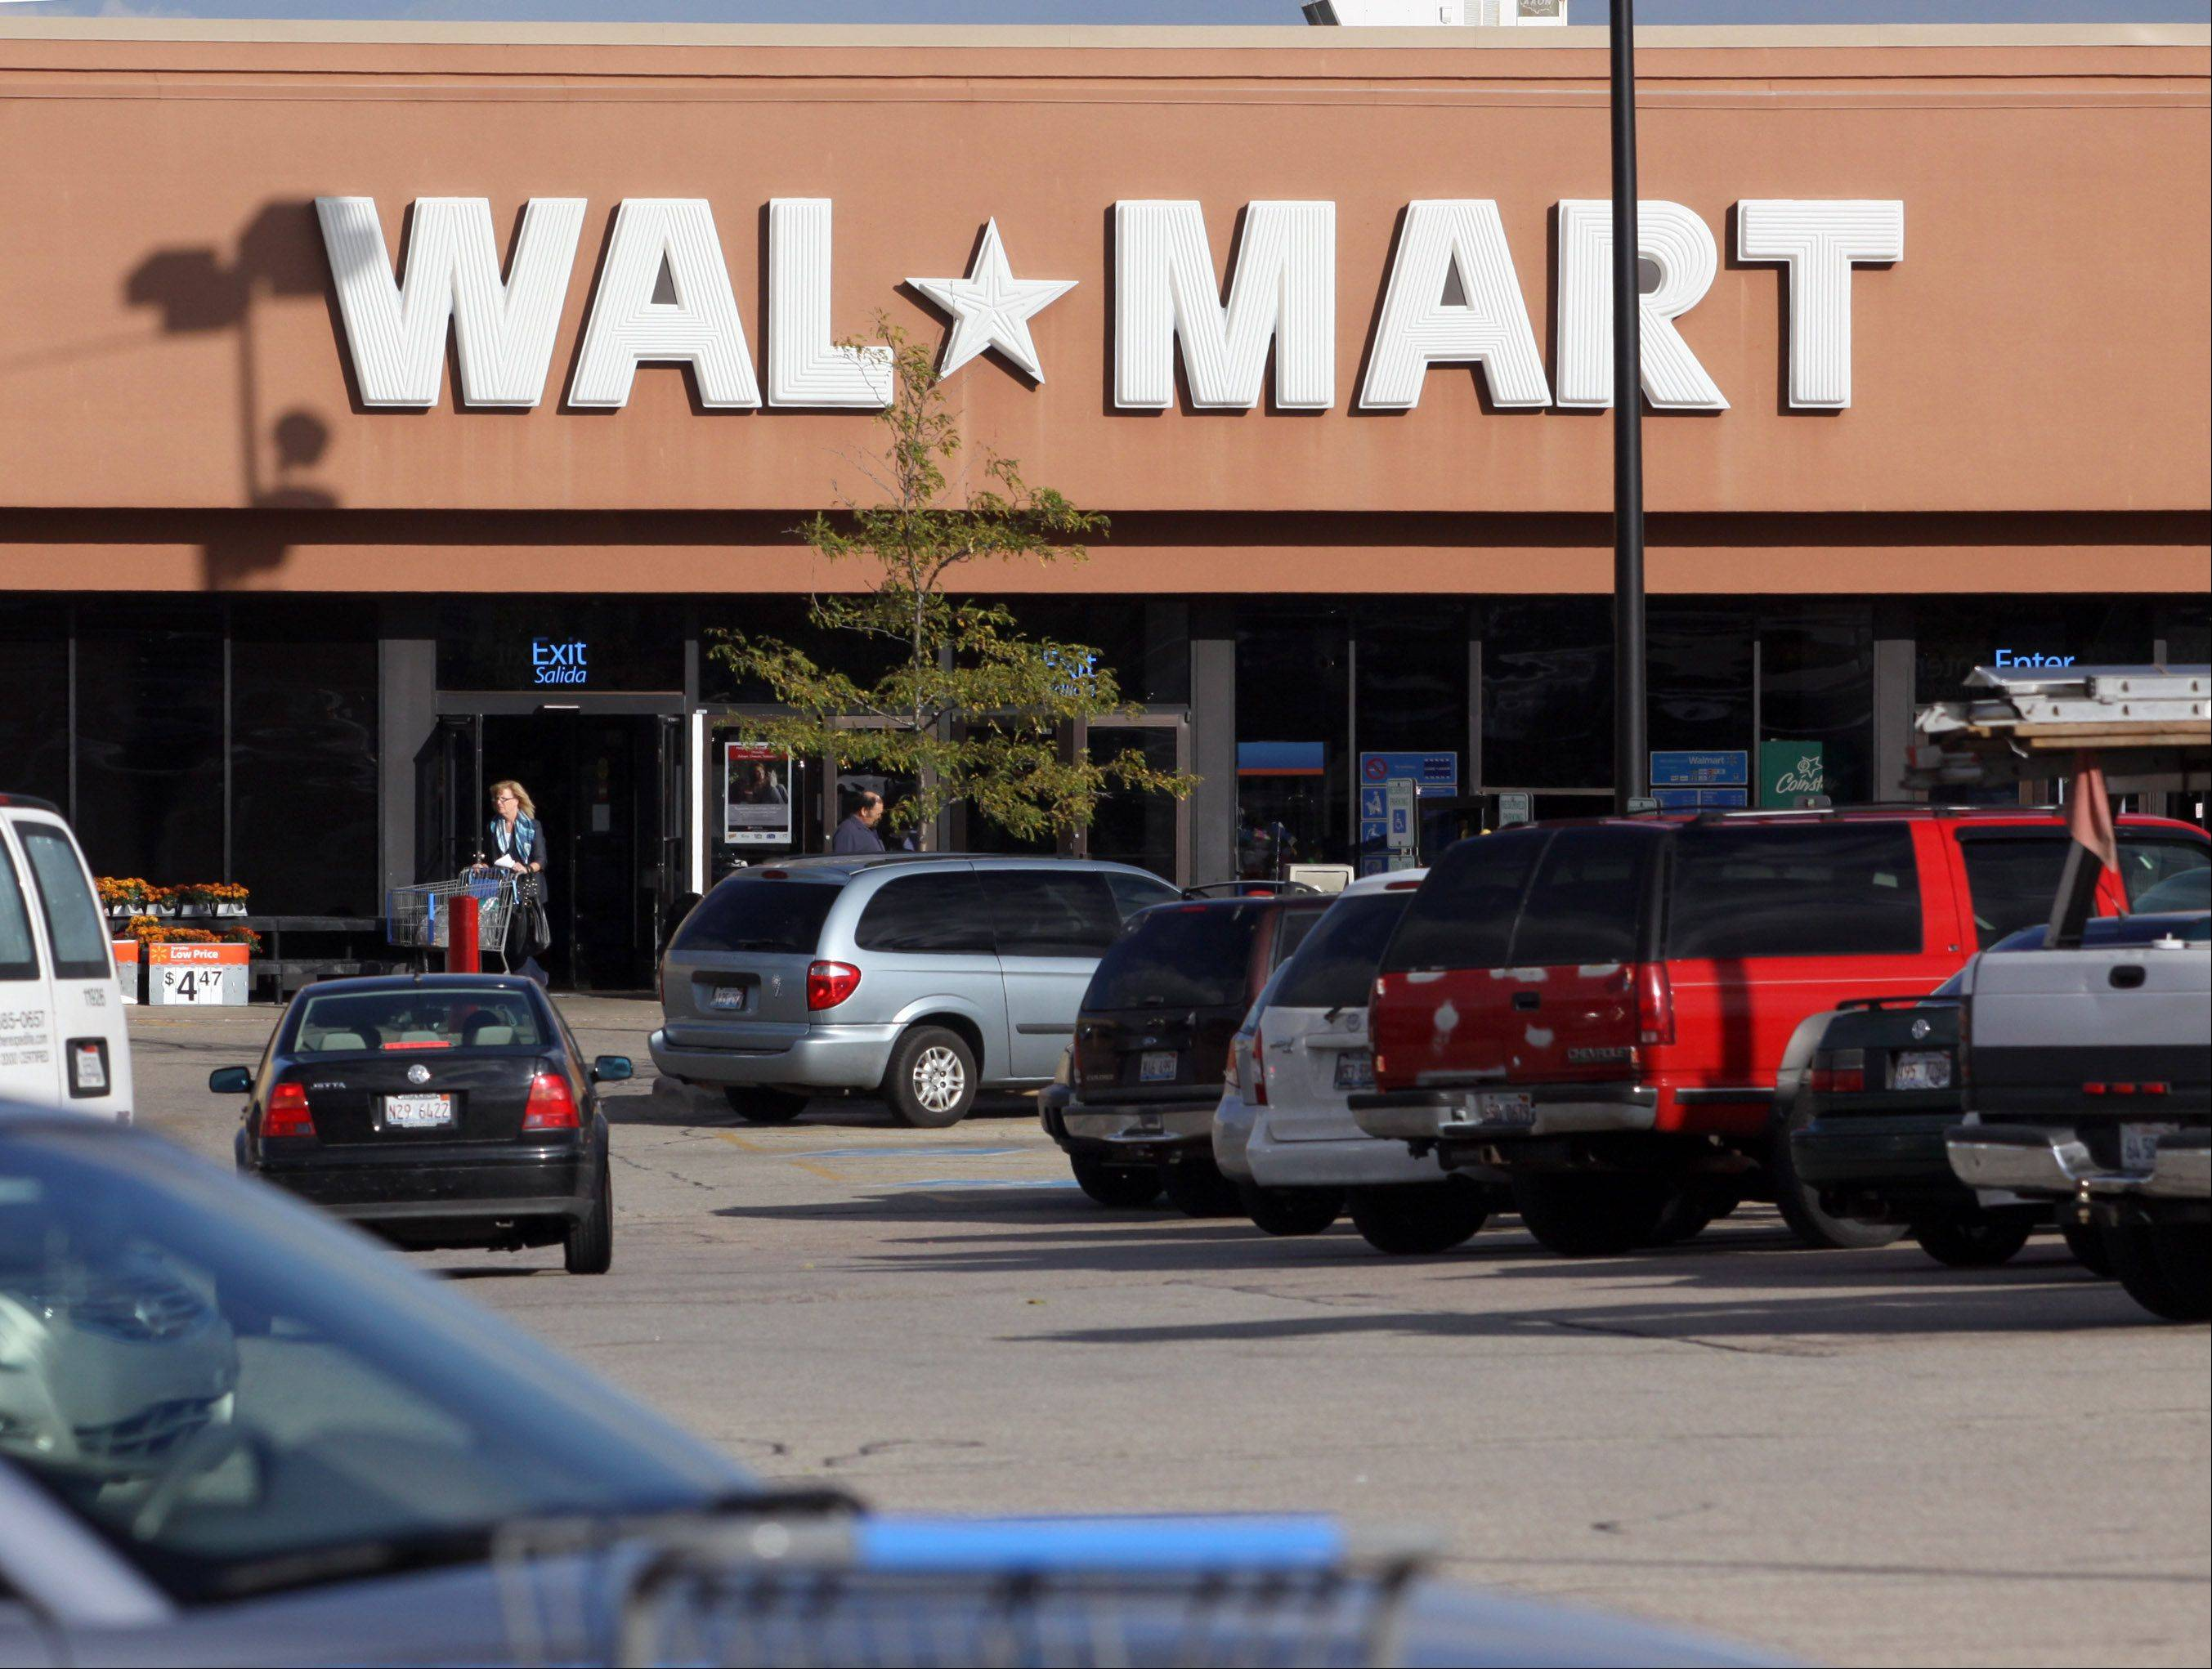 Walmart's intentions to close this East Dundee store and build a super center in Carpentersville has sparked a lawsuit that East Dundee leaders recently filed against Carpentersville. The lawsuit seeks to prevent Walmart from getting any money from Carpentersville's tax increment finance district. A hearing is scheduled Feb. 14.